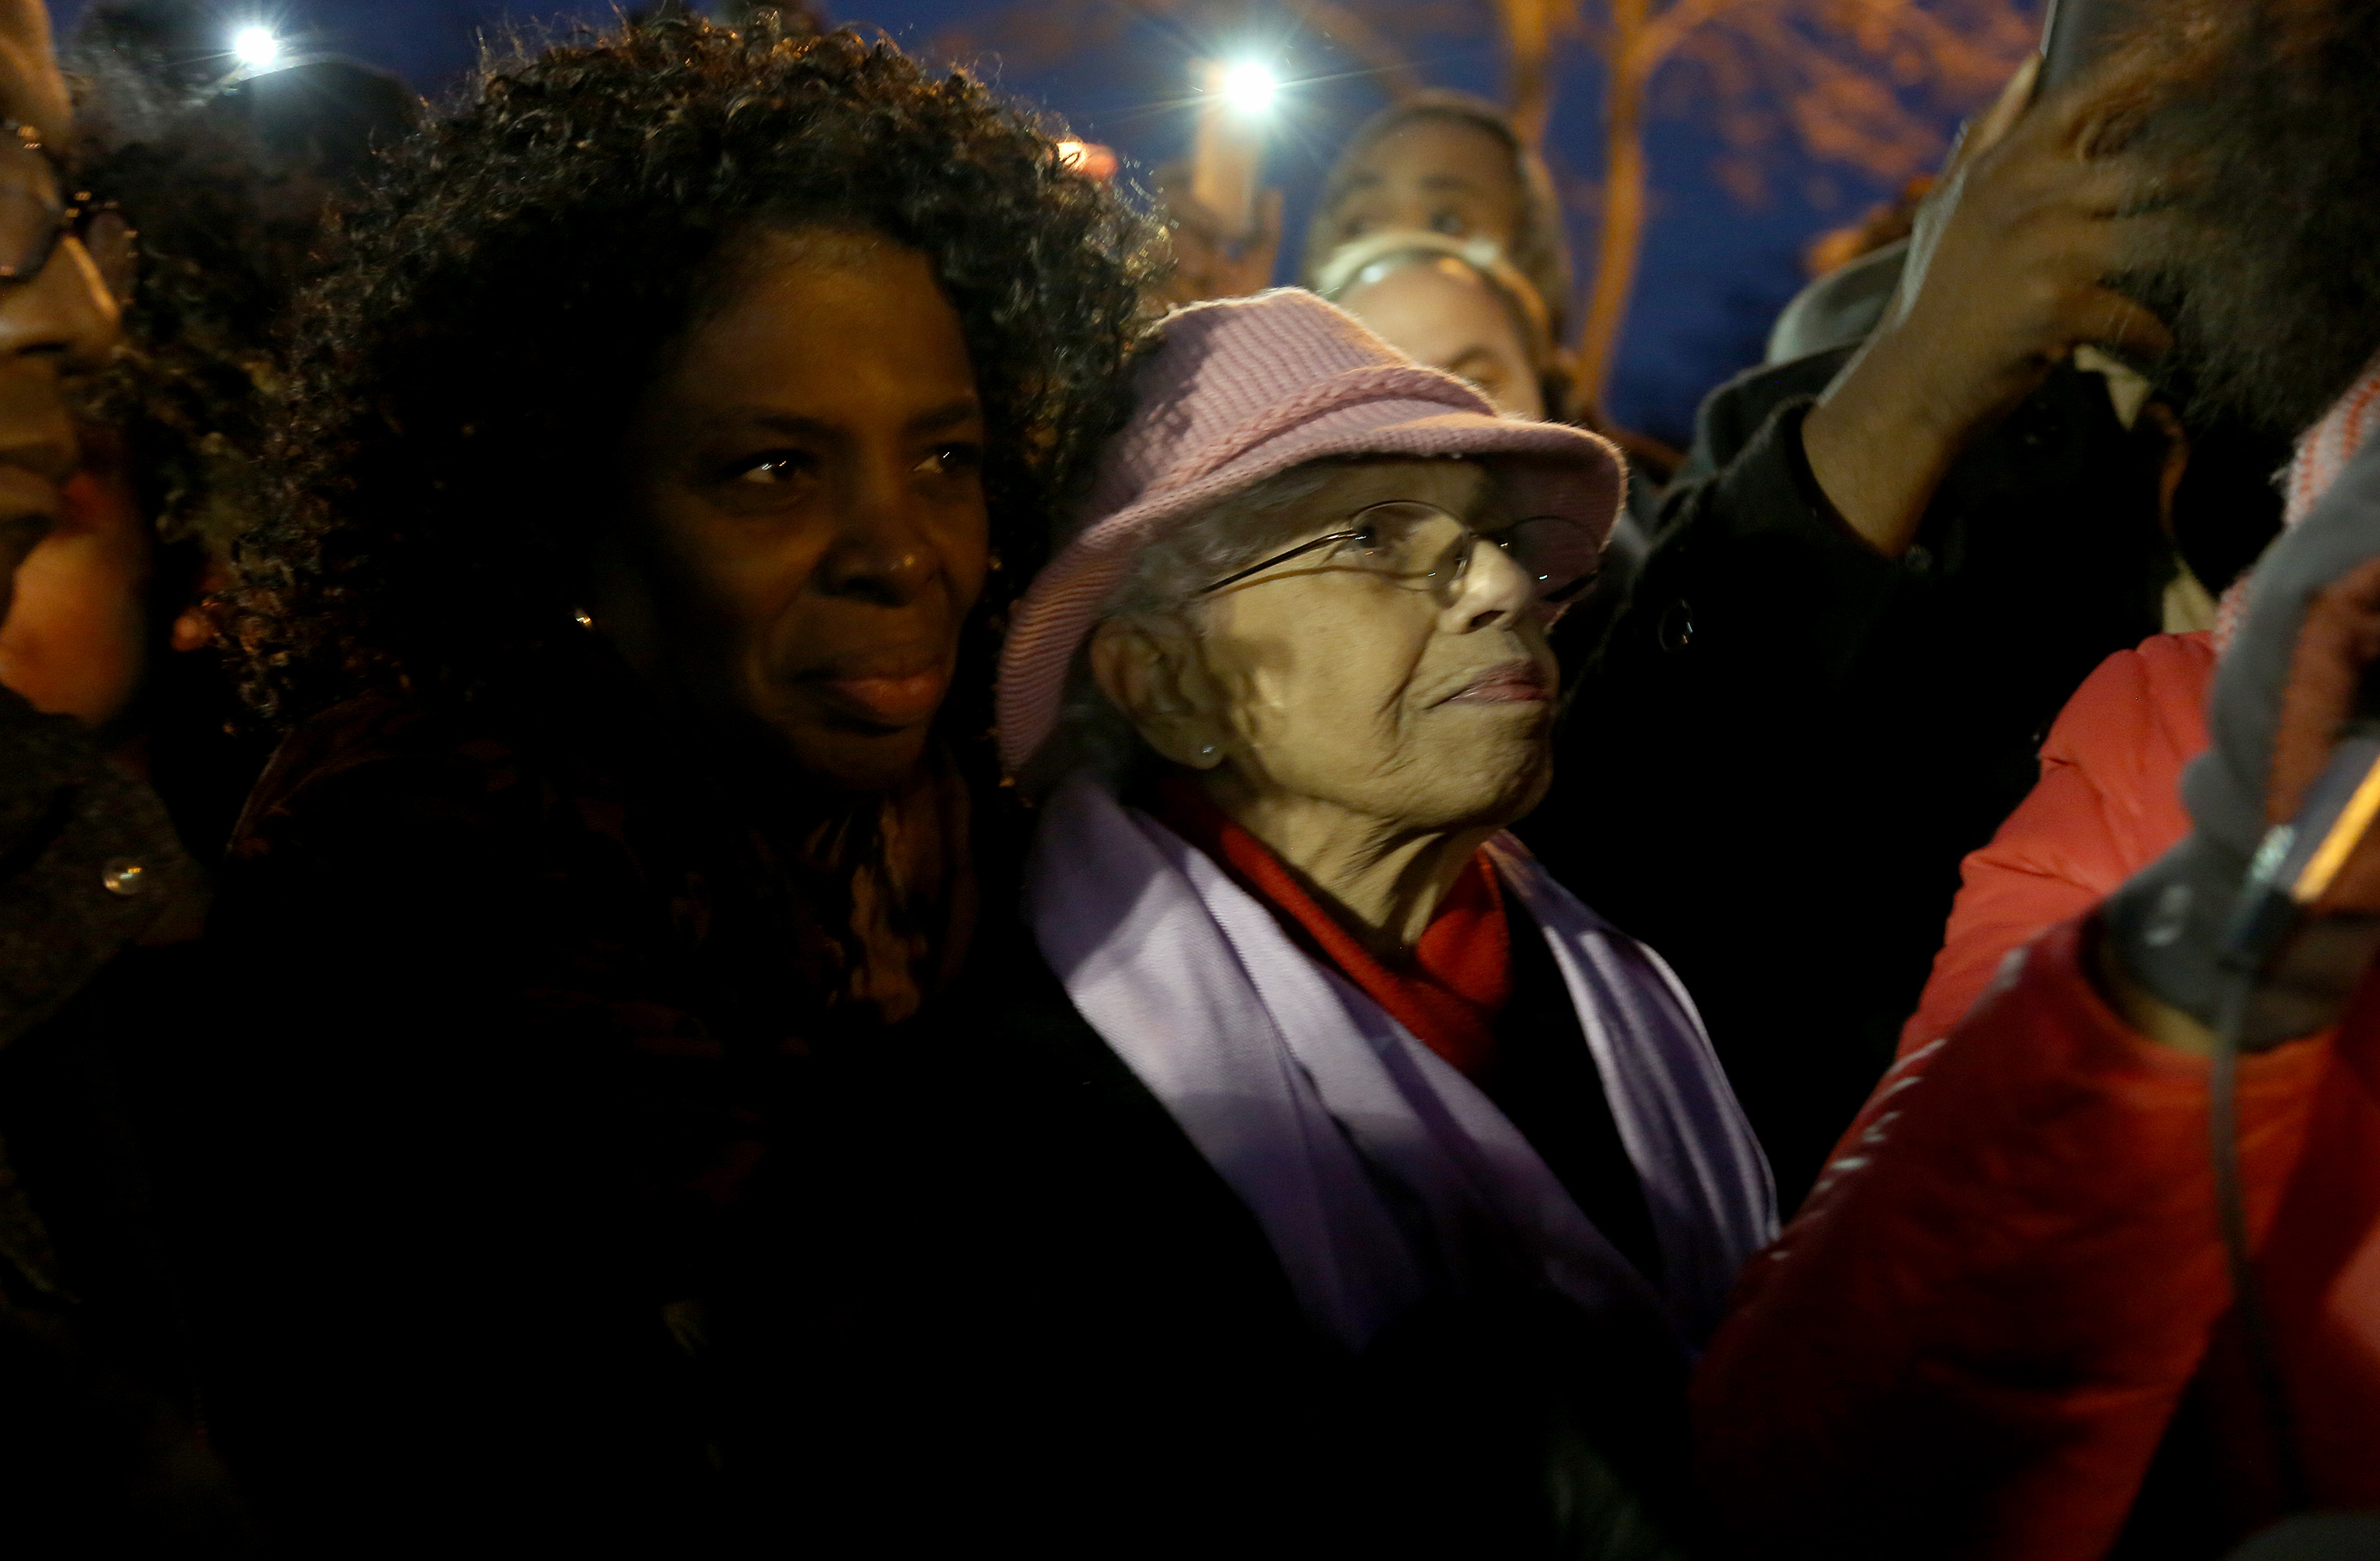 Josie Johsnon listened to speakers during a vigil held in front of the Minneapolis Fourth Precinct. ] (KYNDELL HARKNESS/STAR TRIBUNE) kyndell.harkness@startribune.com Protesters in front of Minneapolis Fourth Precinct in Minneapolis Min., Friday November 20, 2015. ORG XMIT: MIN1511201912230205